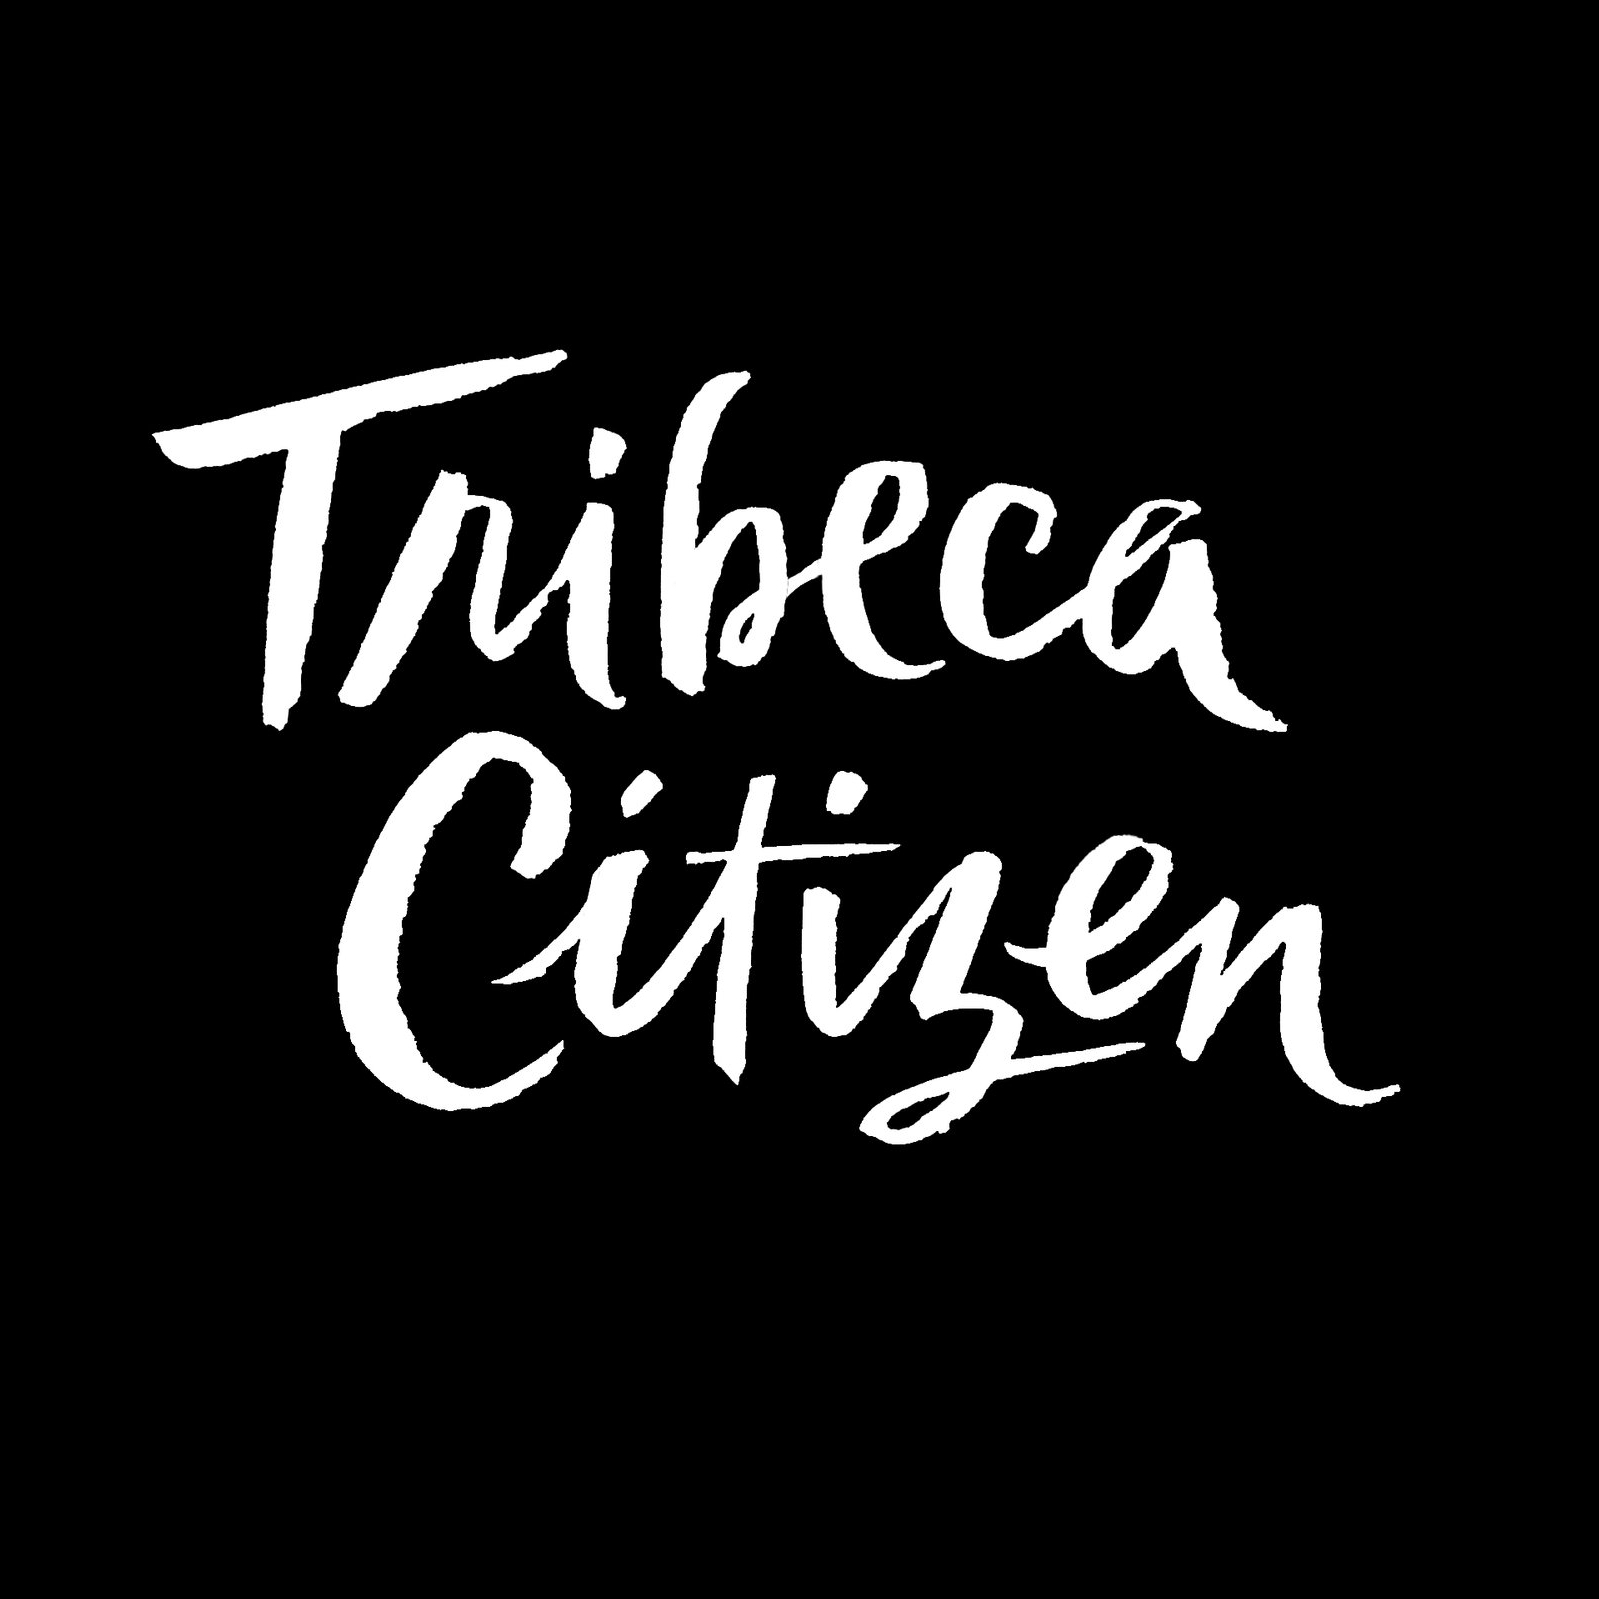 Hand-Lettered-logo-by-Erin-Ellis_Tribeca-Citizen-7.jpg